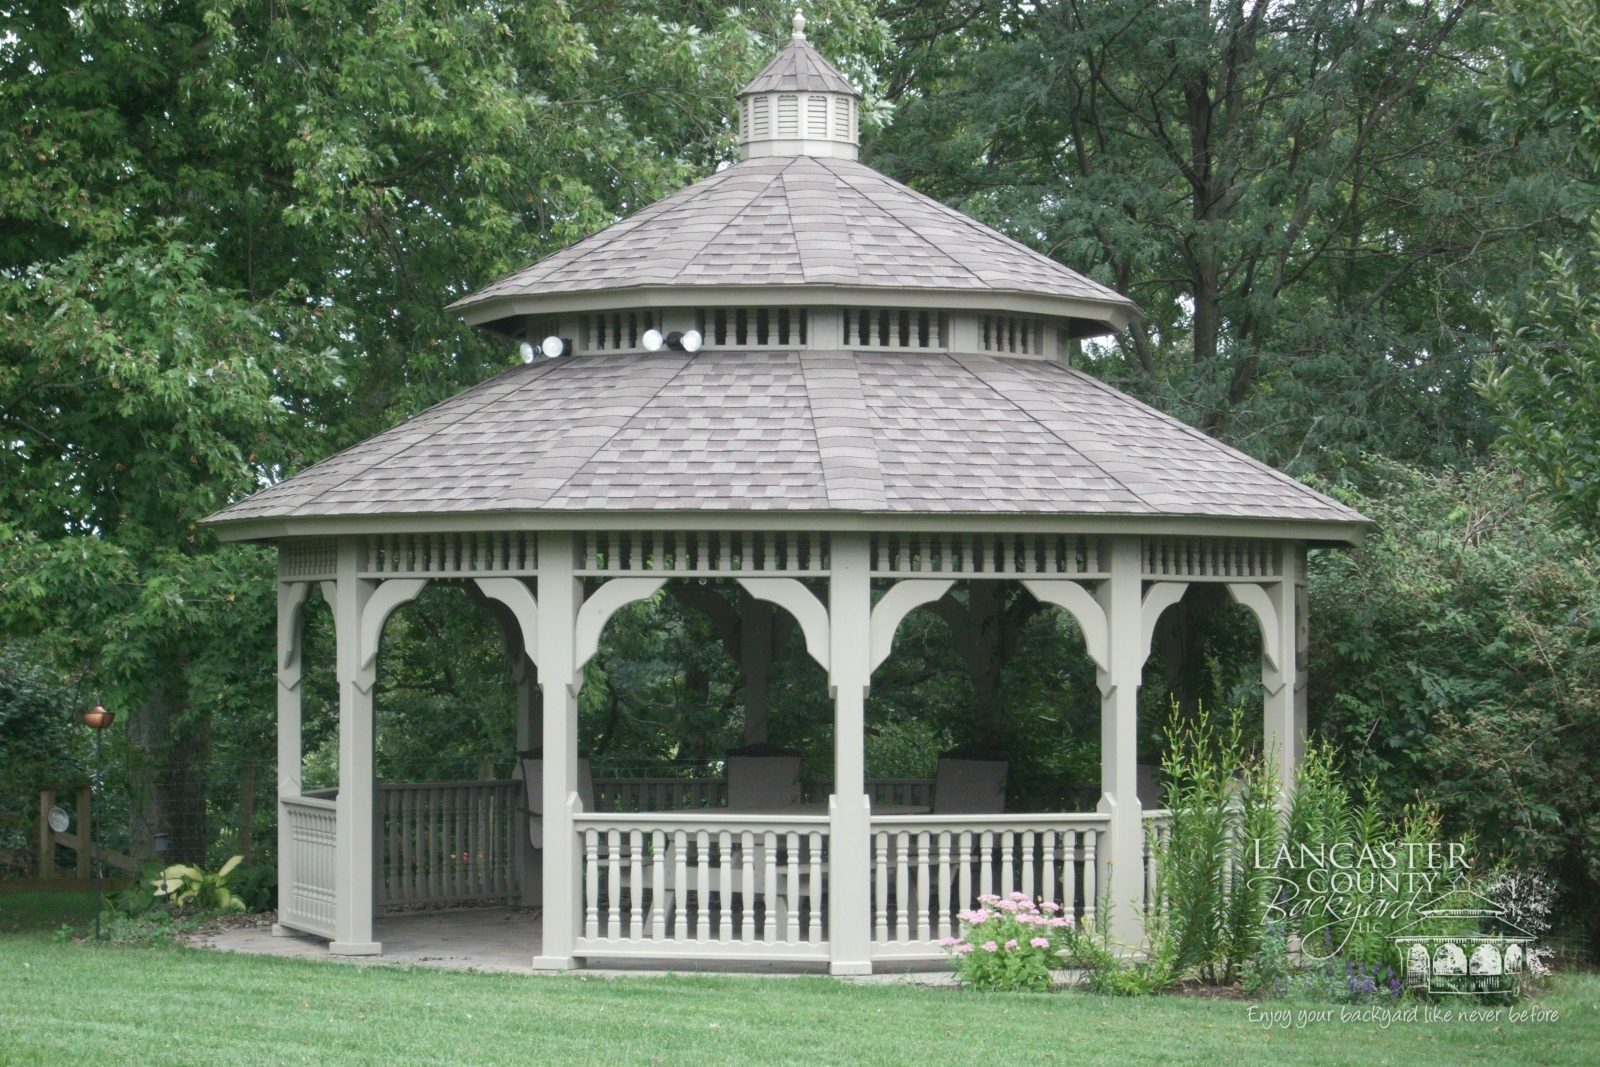 An Irresistible Permanent Gazebo With Asphalt Shingles In The Garden